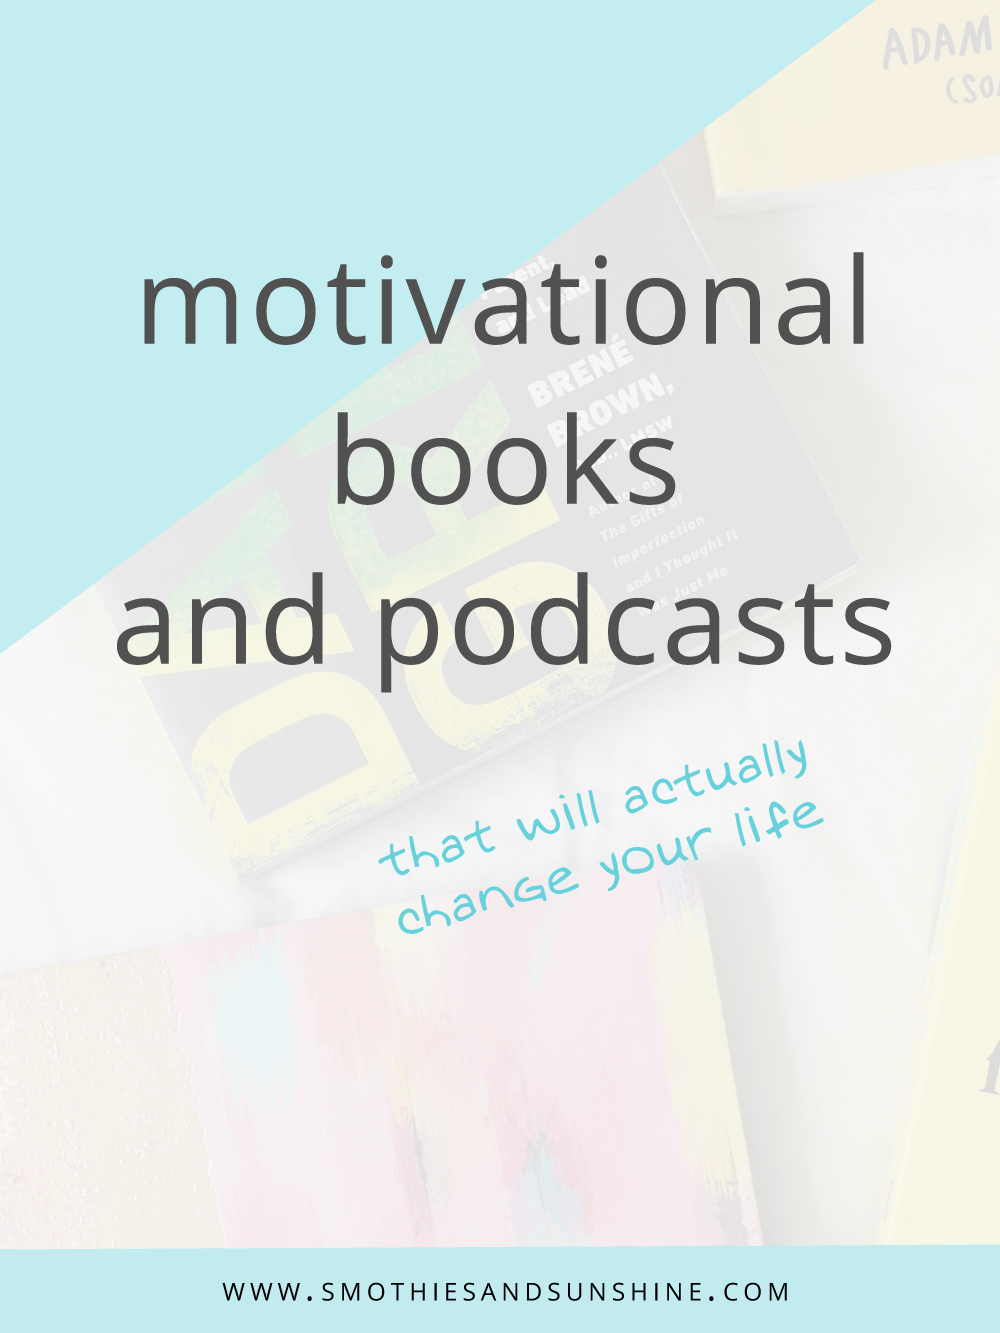 november-motivational-books-and-podcasts.jpg